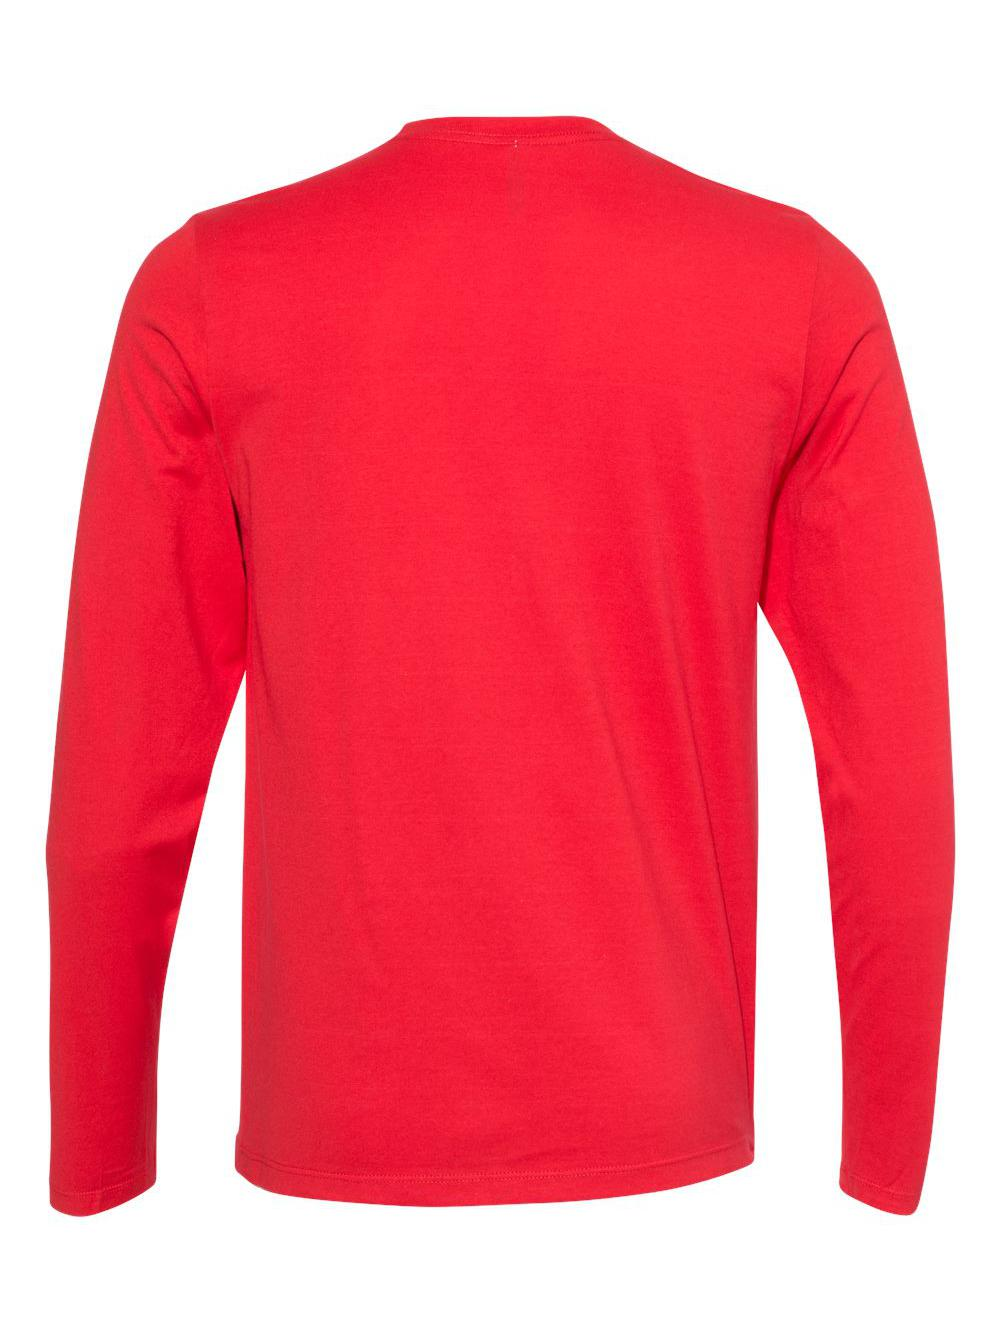 ALSTYLE-Ultimate-Long-Sleeve-T-Shirt-5304 thumbnail 17